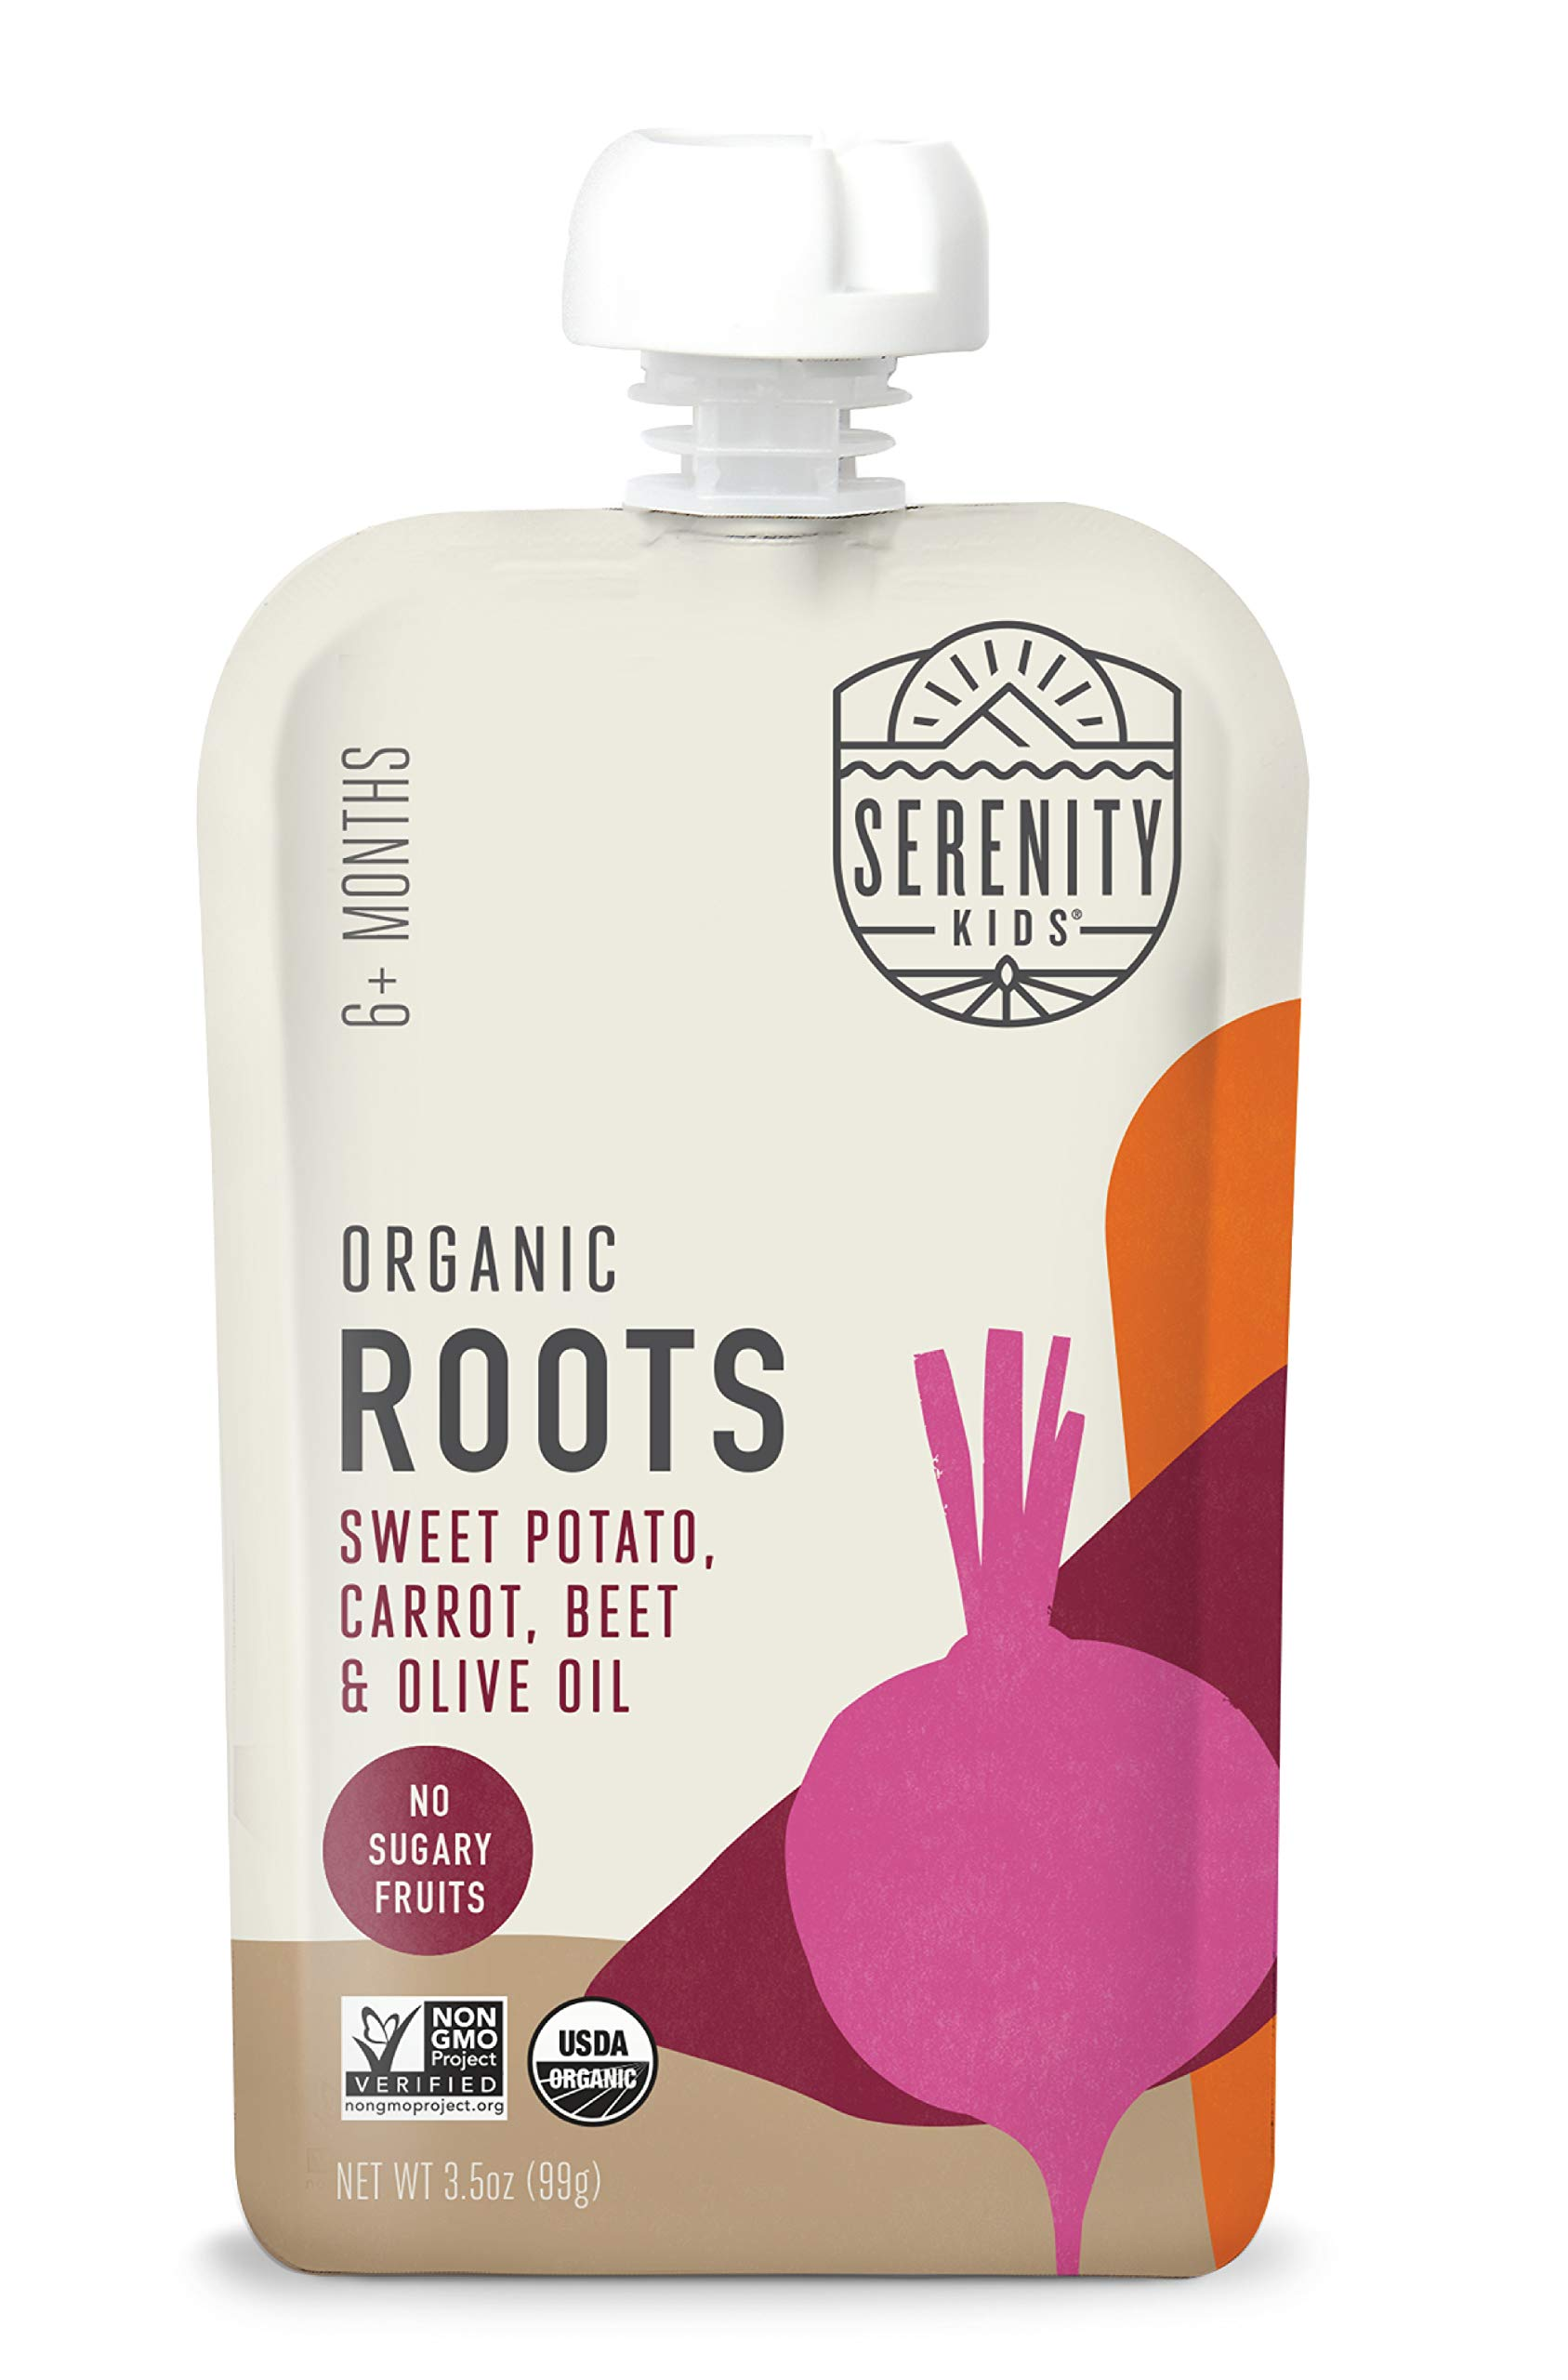 Serenity Kids Baby Food, Organic Sweet Potato, Carrot and Beet with Olive Oil, For 6+ Months, 3.5 Ounce Pouch (12 Count)